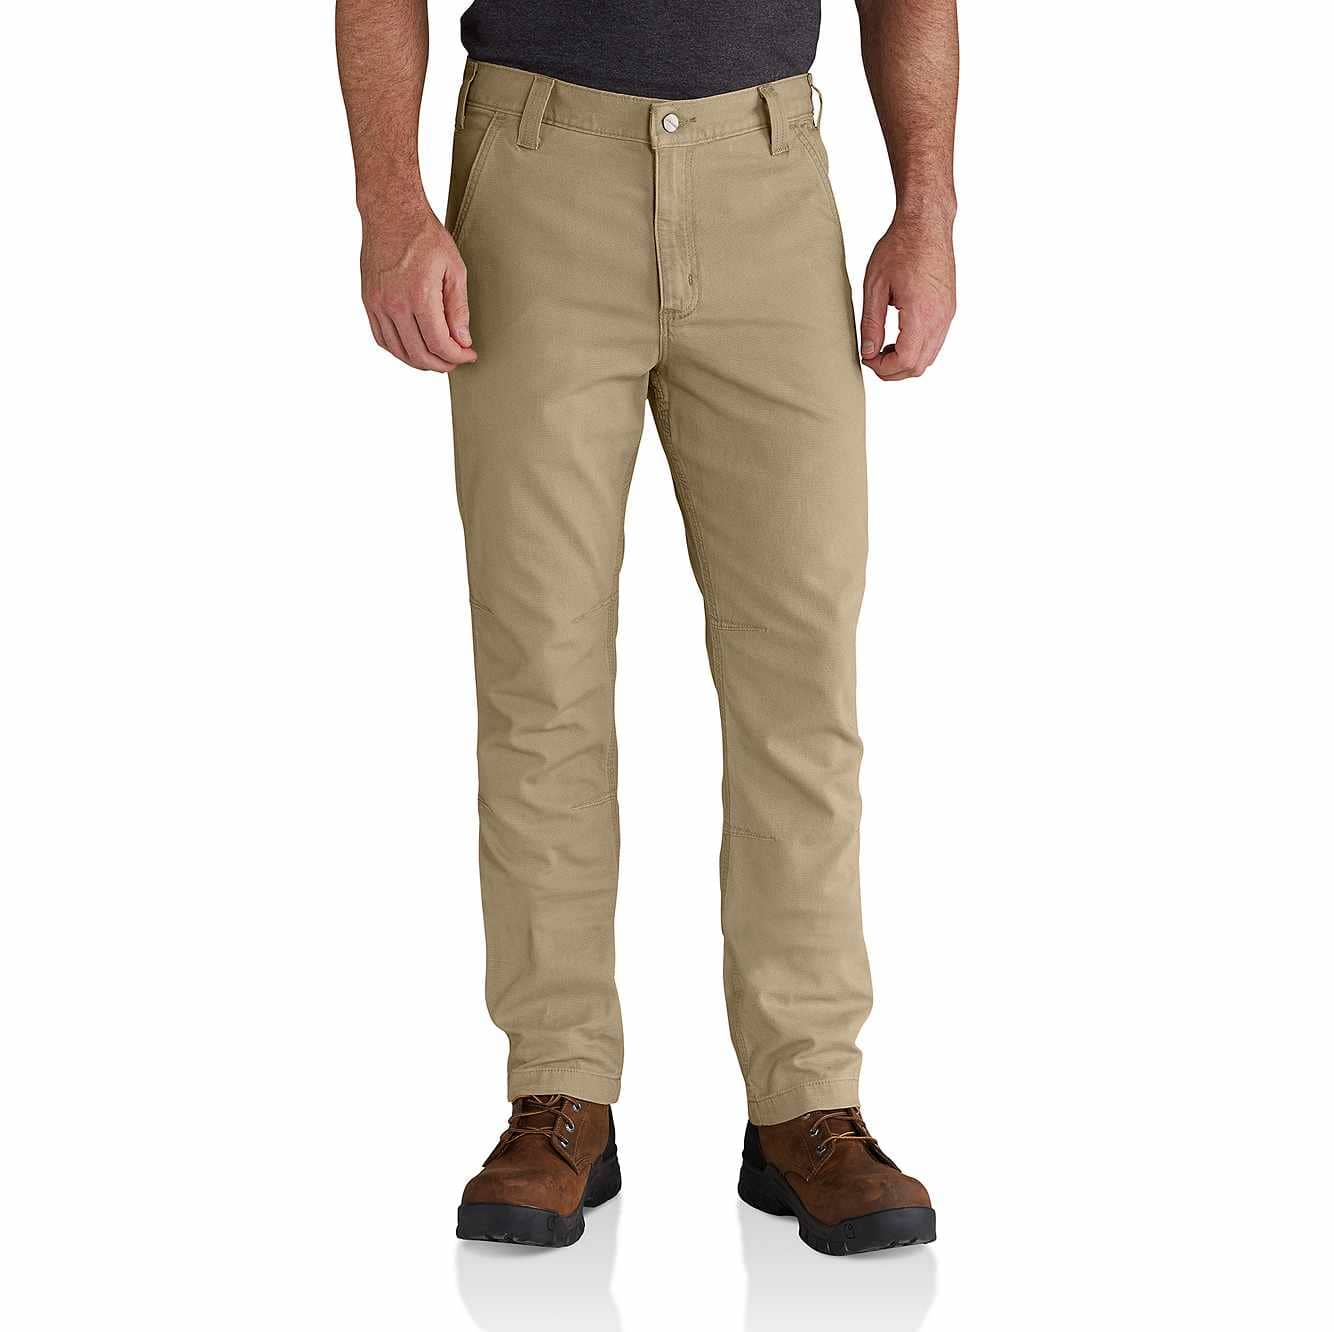 Picture of Rugged Flex® Rigby Straight Fit Pant in Dark Khaki